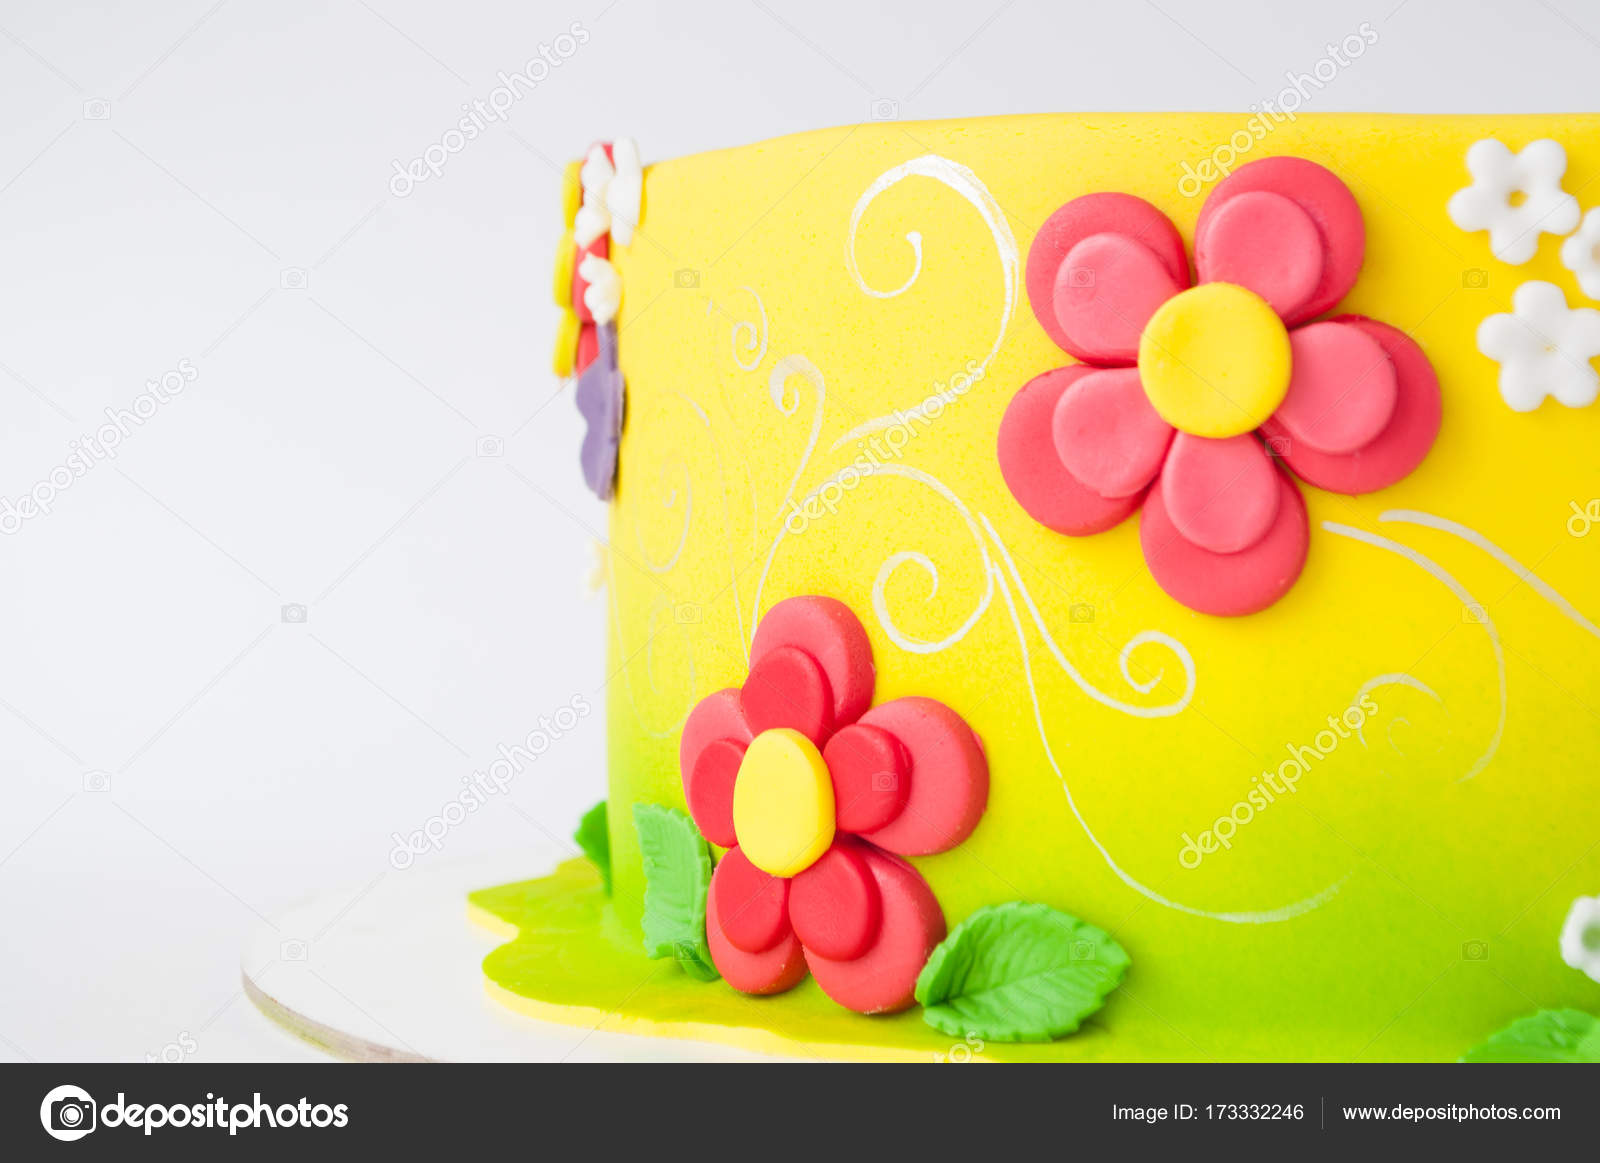 Colorful Childrens Birthday Cake Made Of Yellow Mastic Decorated With Pink Flowers Leaves Pattern On A White Background Close Up Cutout